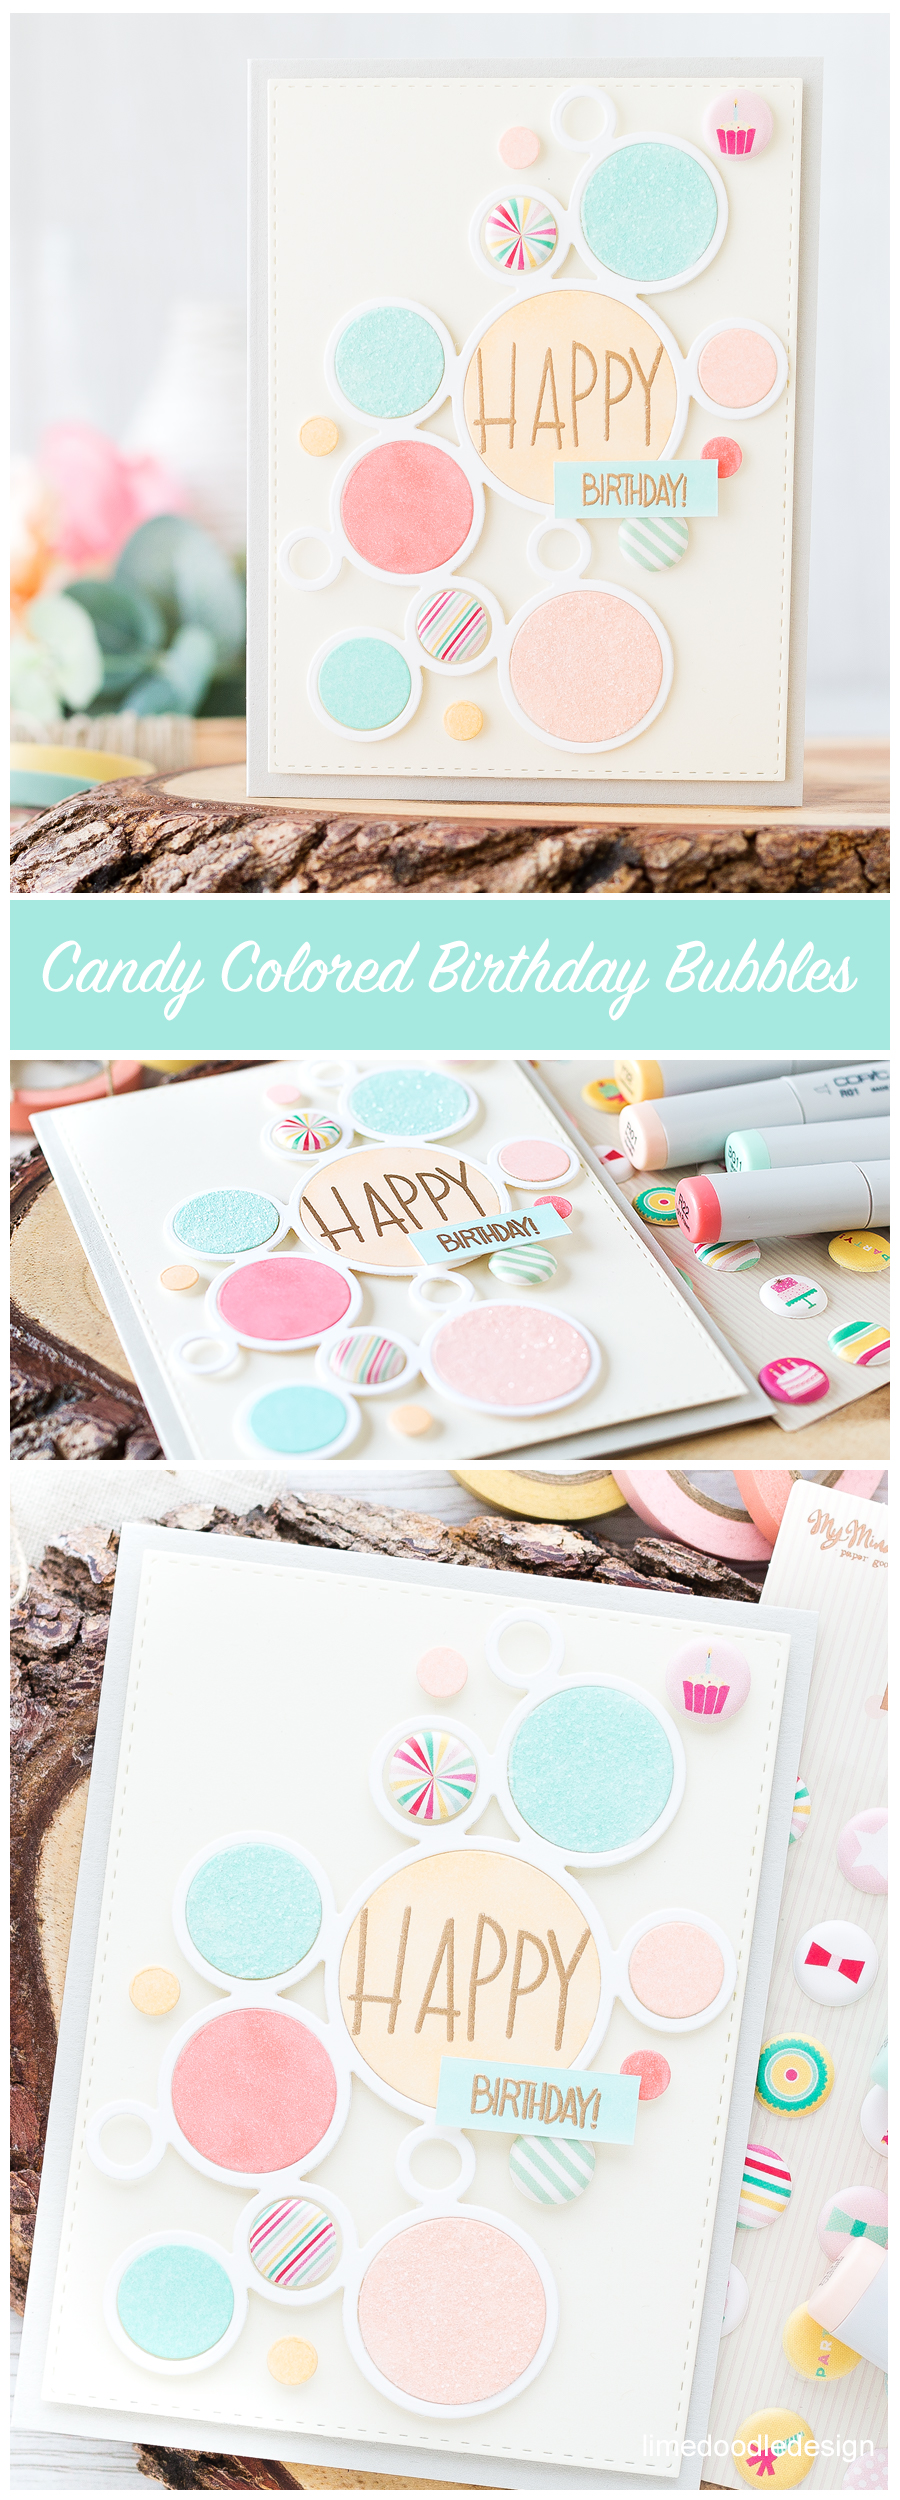 Candy Colored Birthday Bubbles Card. Find out more by clicking on the following link: https://limedoodledesign.com/2016/08/candy-colored-birthday-bubbles/